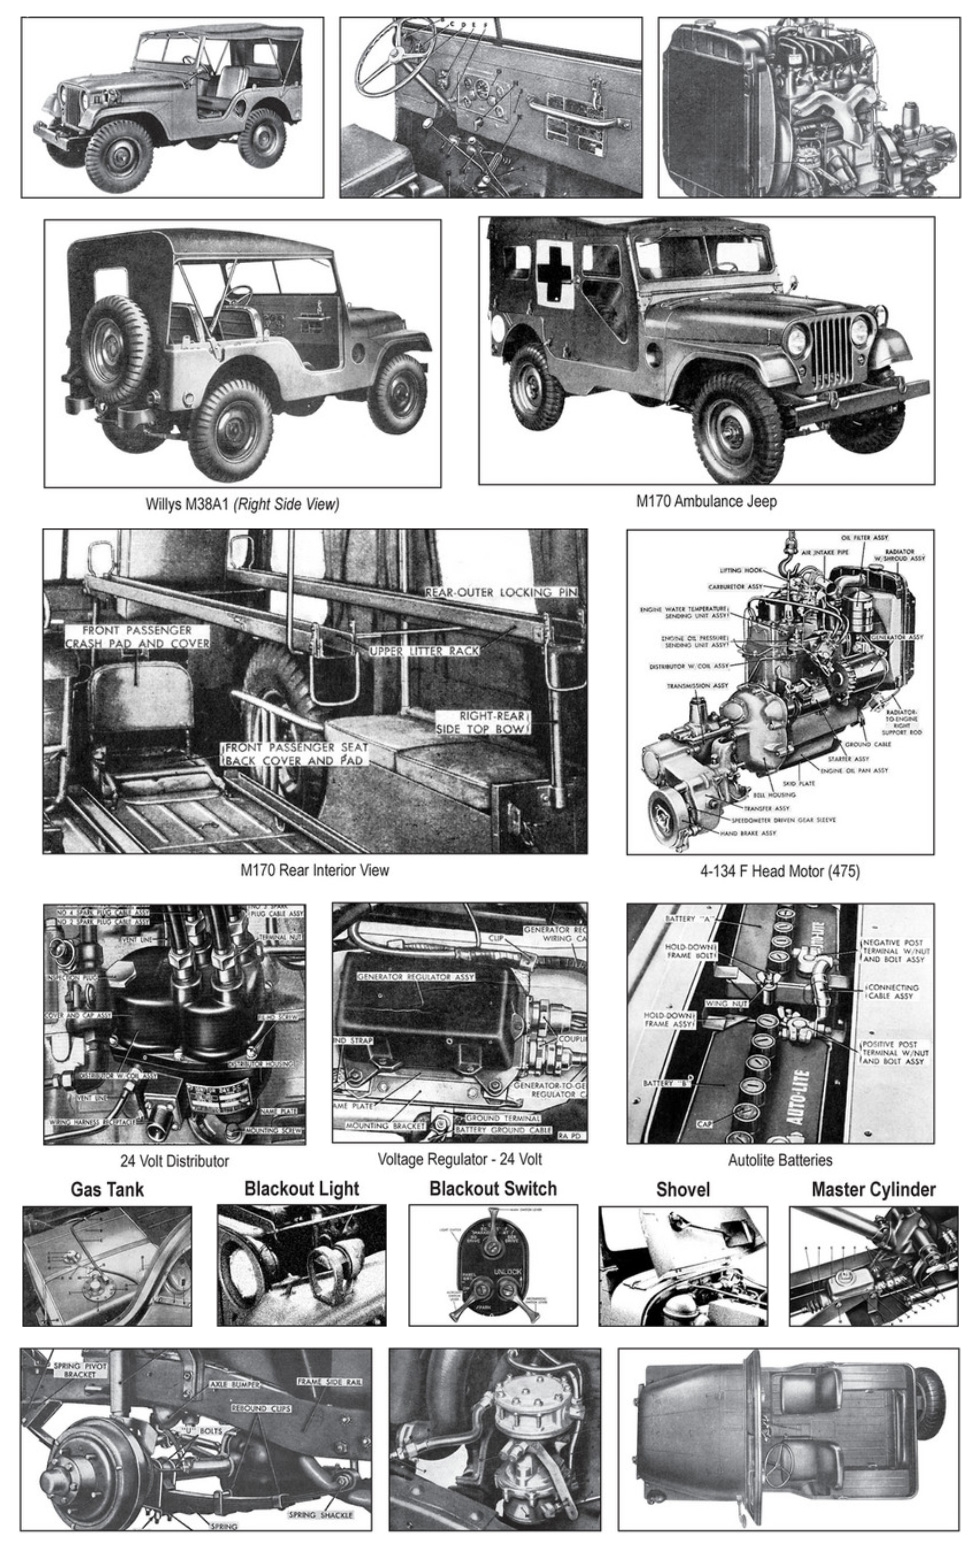 hight resolution of willys m38a1 detailed views